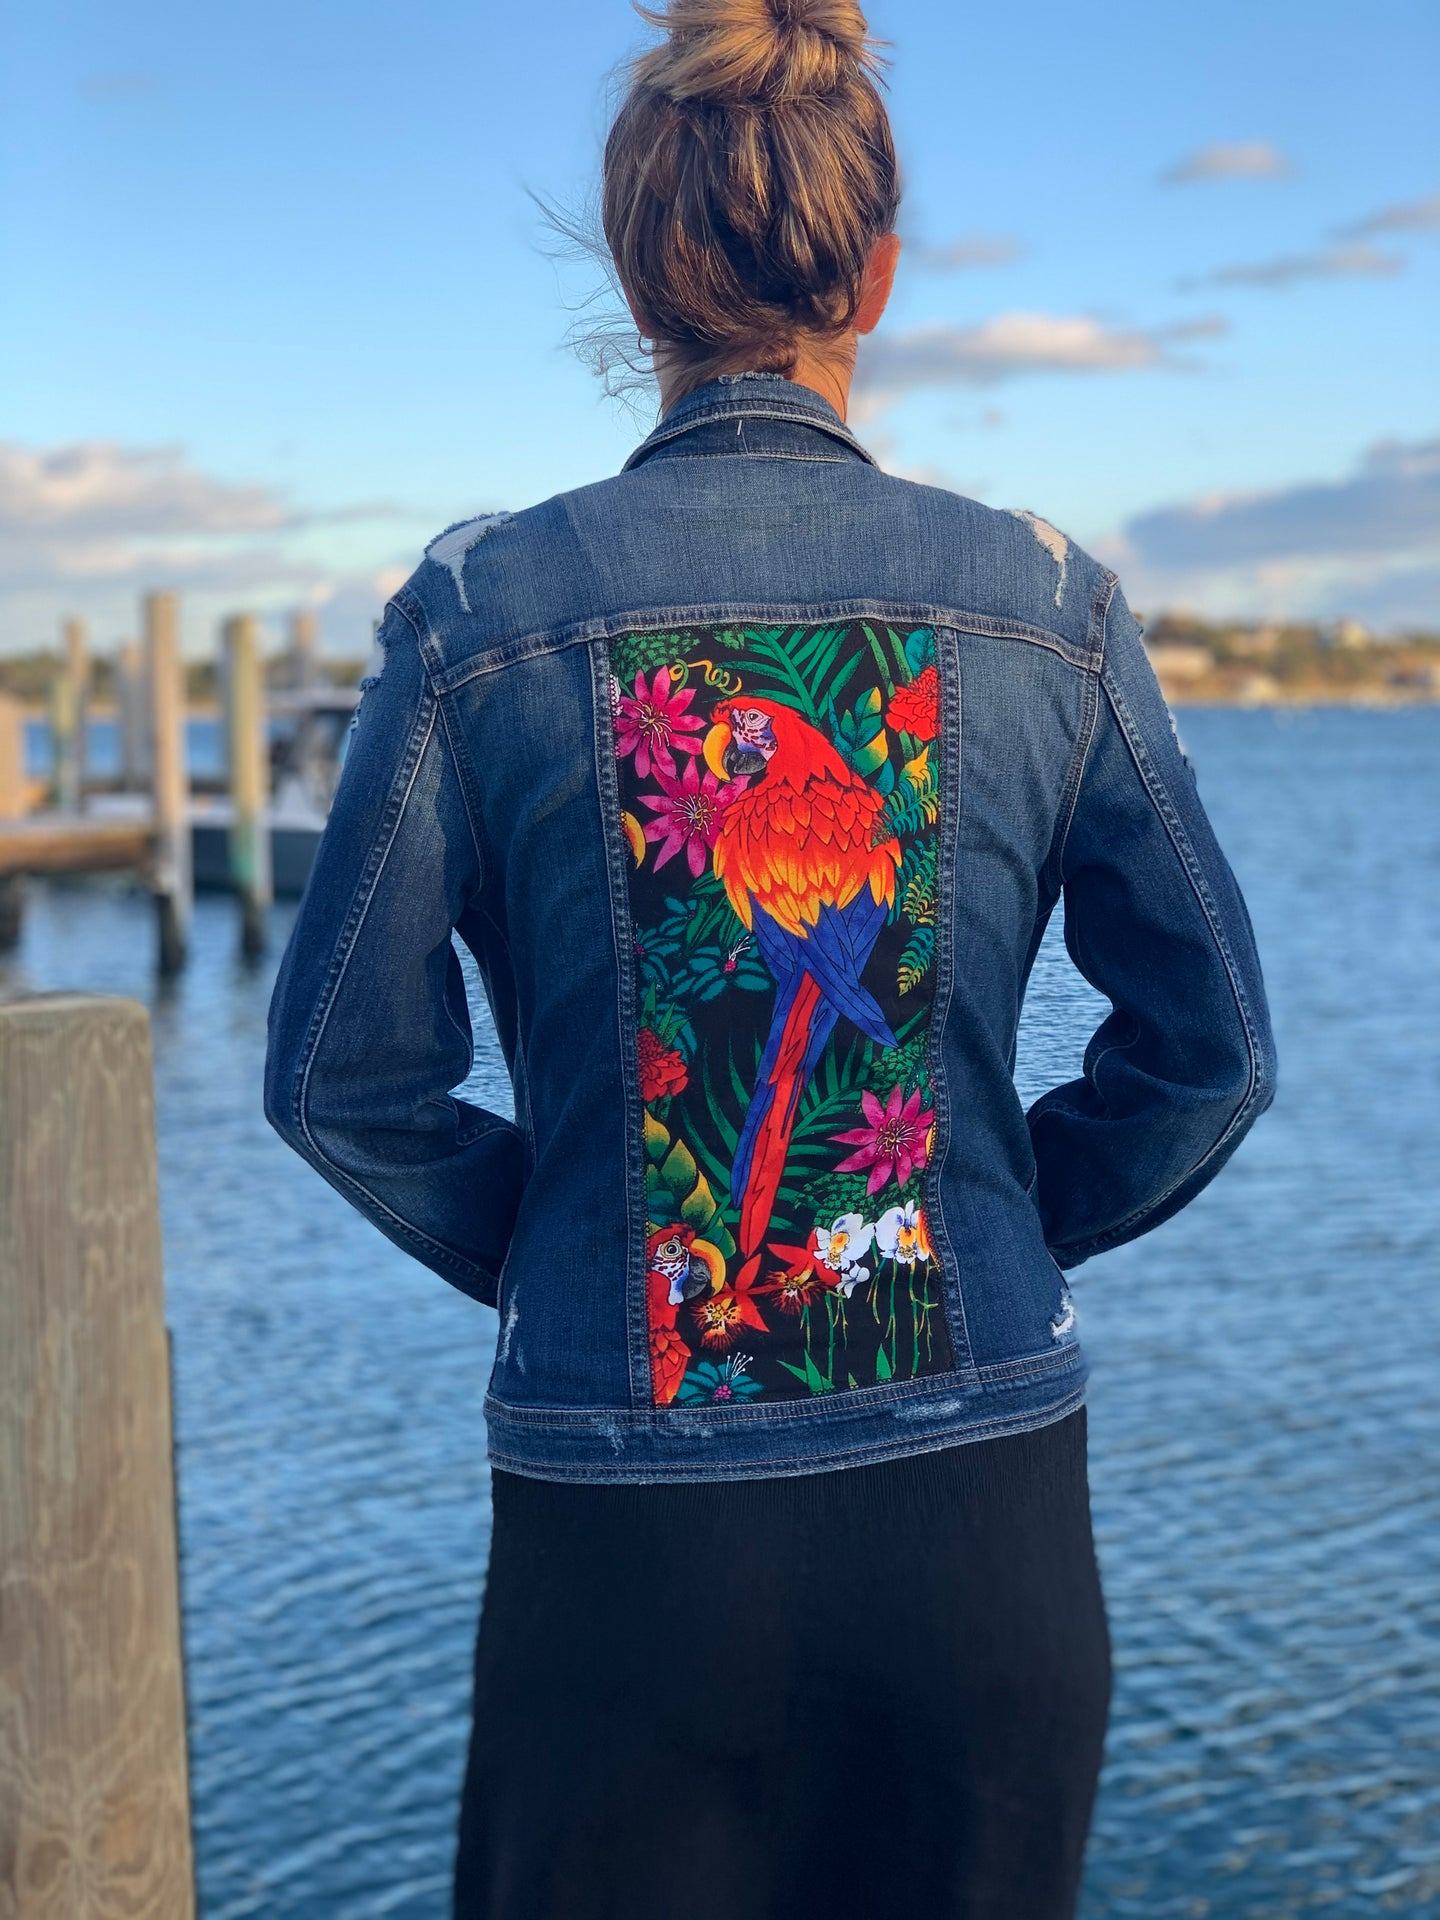 Handmade one of a kind denim jacket. Reclaimed and repurposed. Parrot Colorful  Tropical print